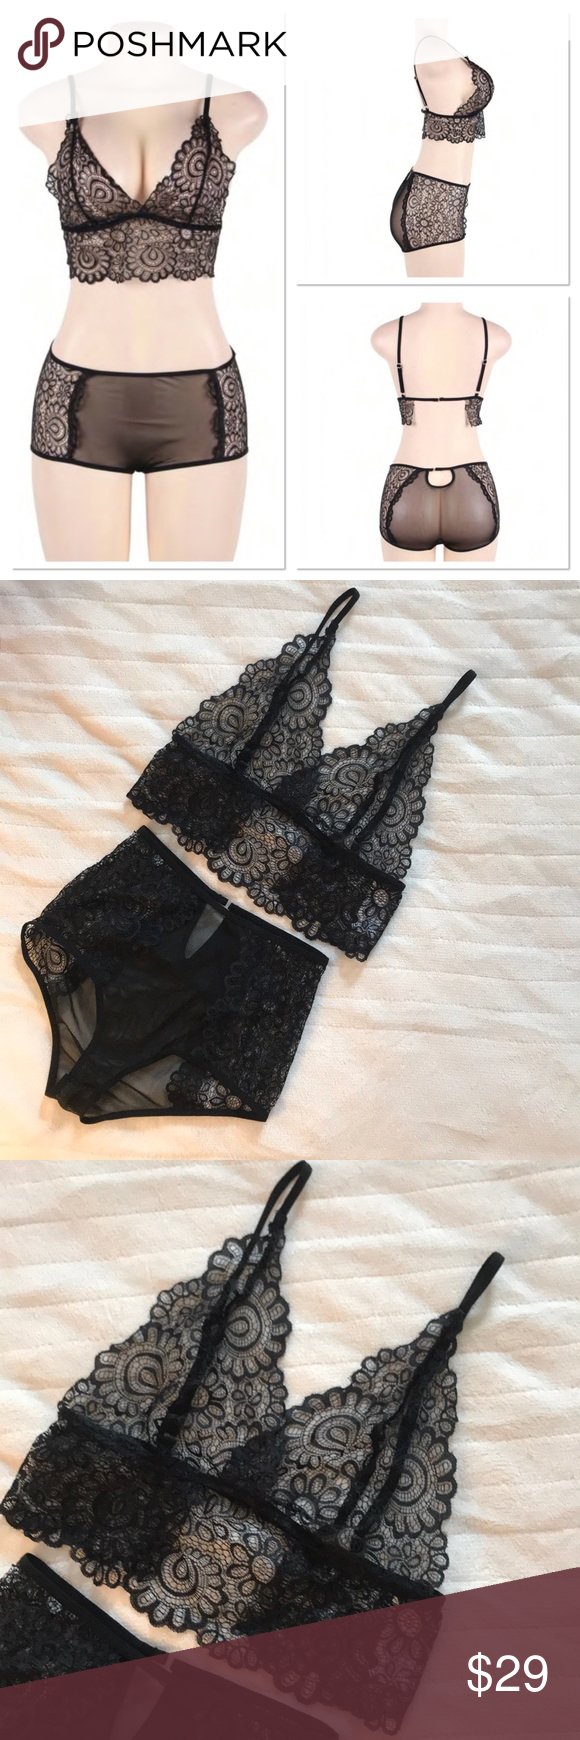 f79345fab042e Black Floral Lace Bra   Panty Set ‼️PLEASE NOTE  Labeled size medium 6